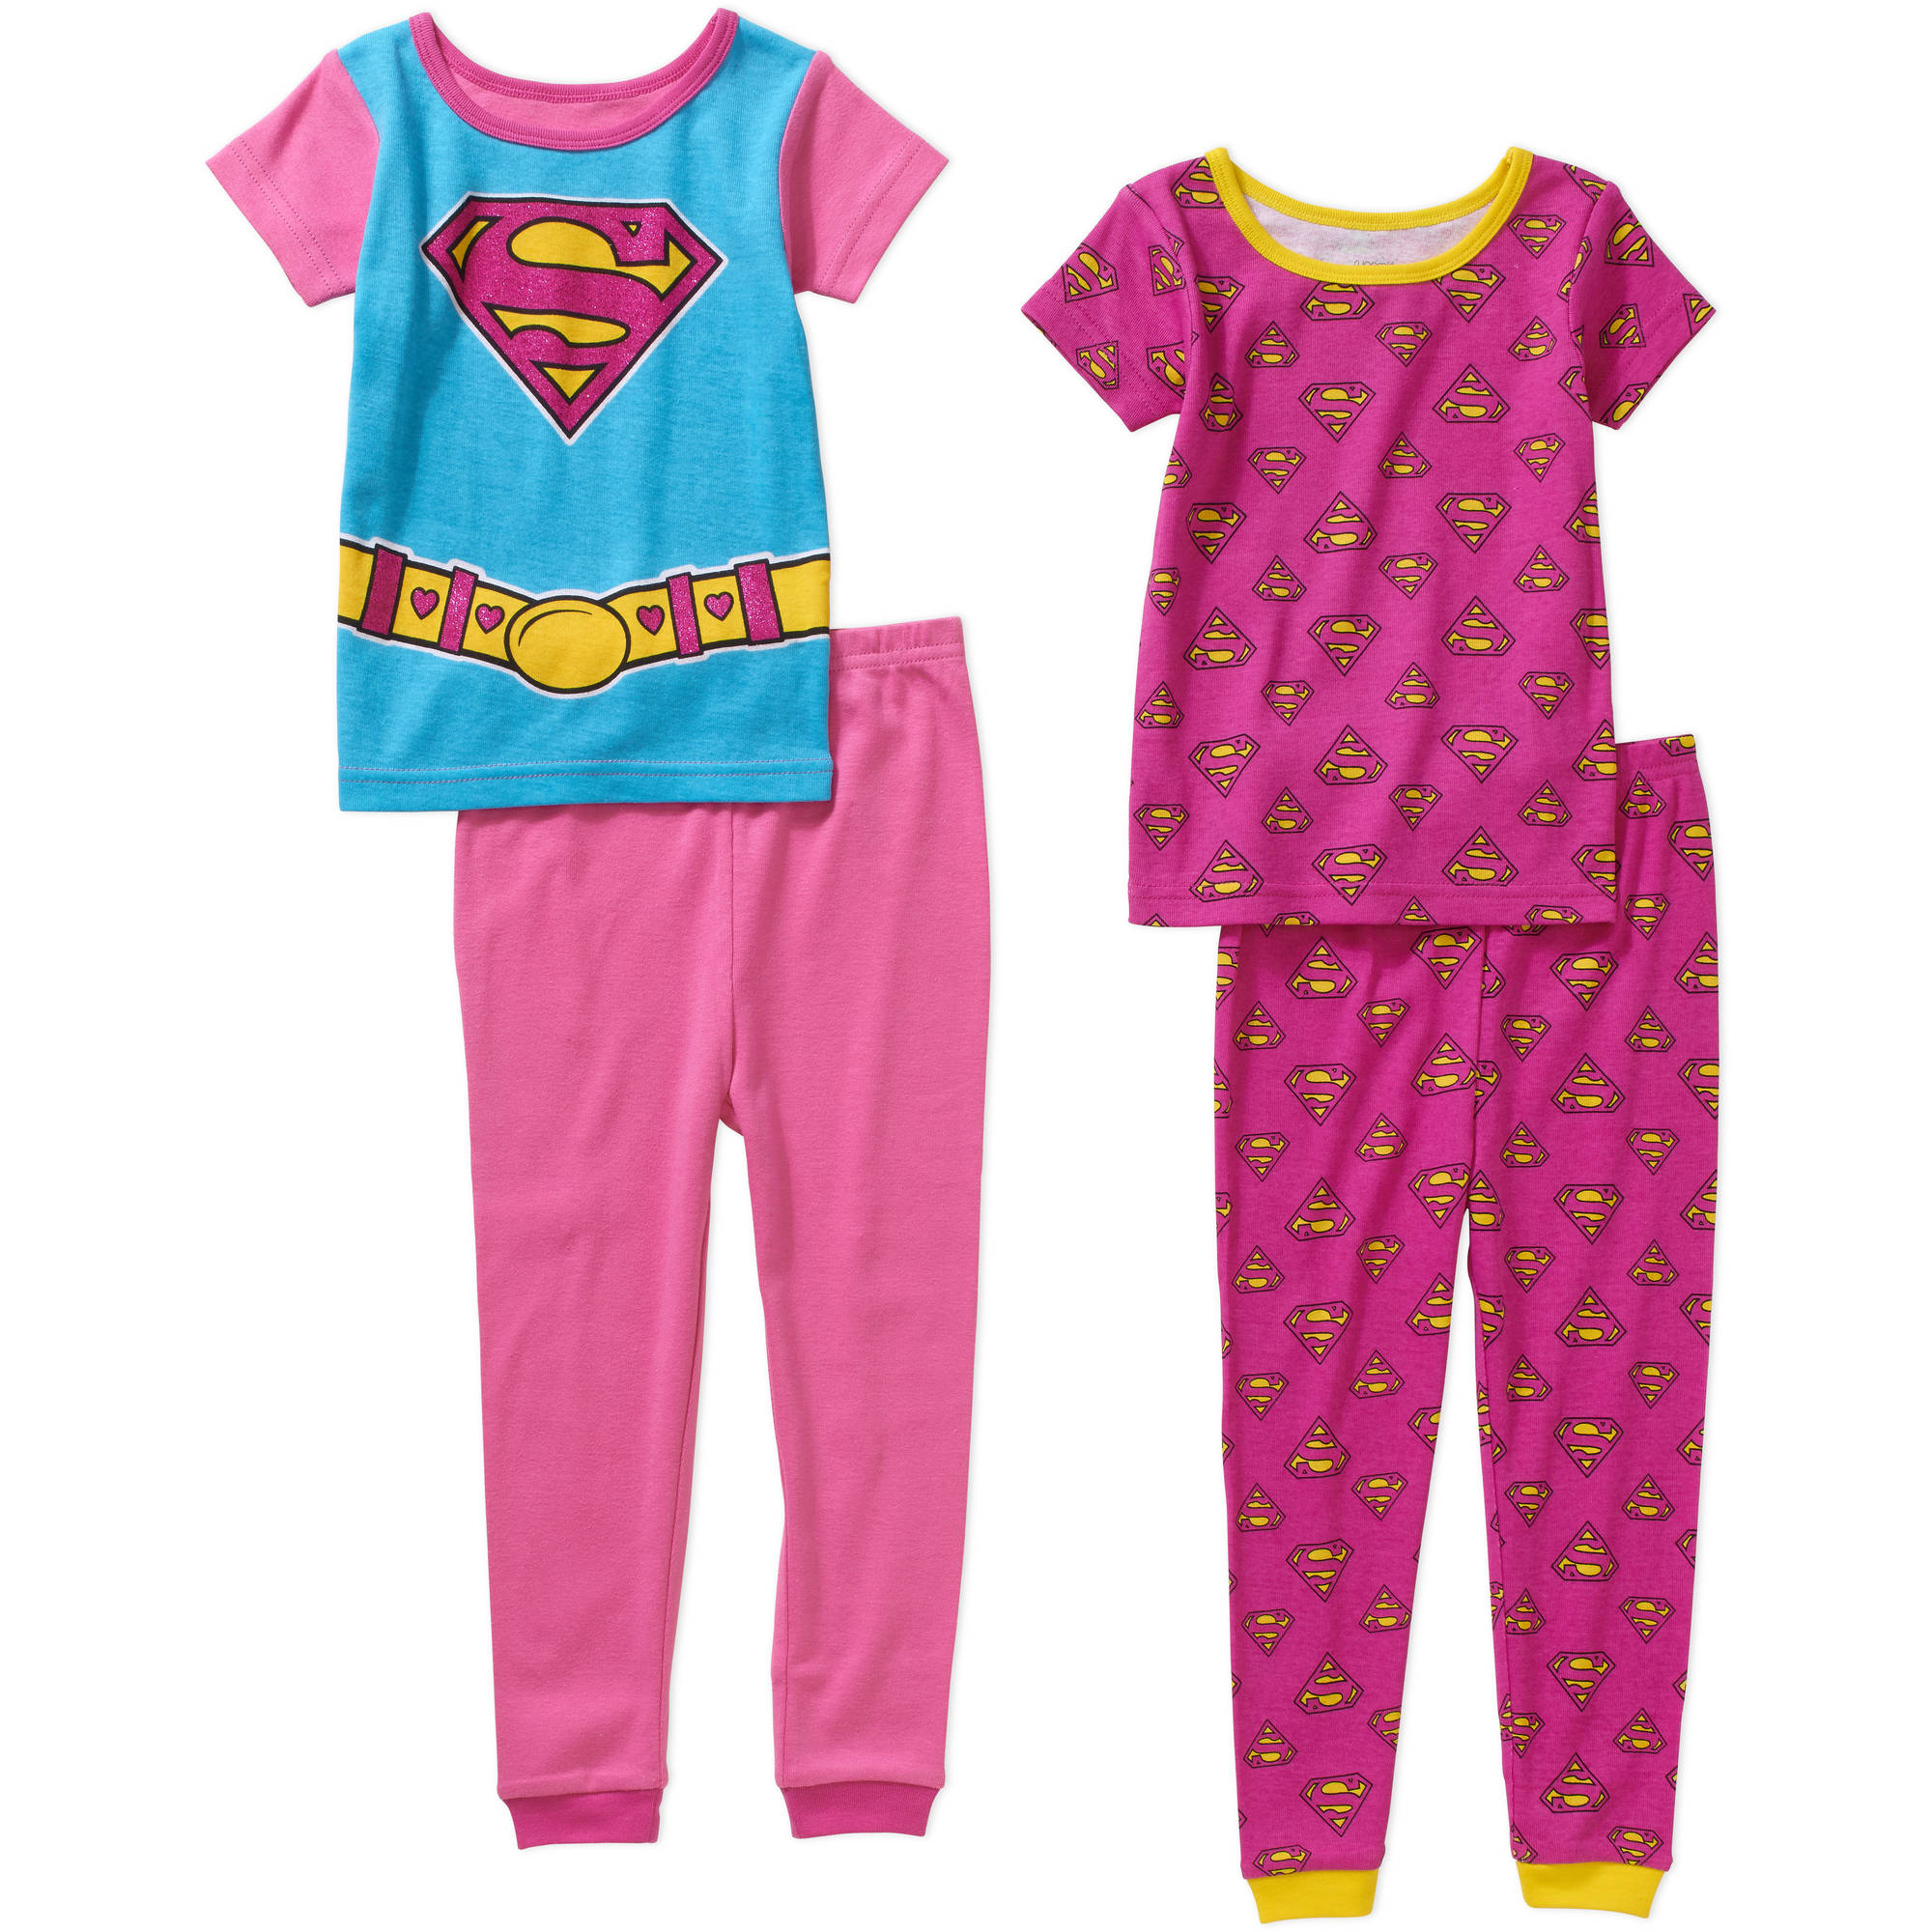 Generic Supergirl Toddler Girl Cotton Tight Fit